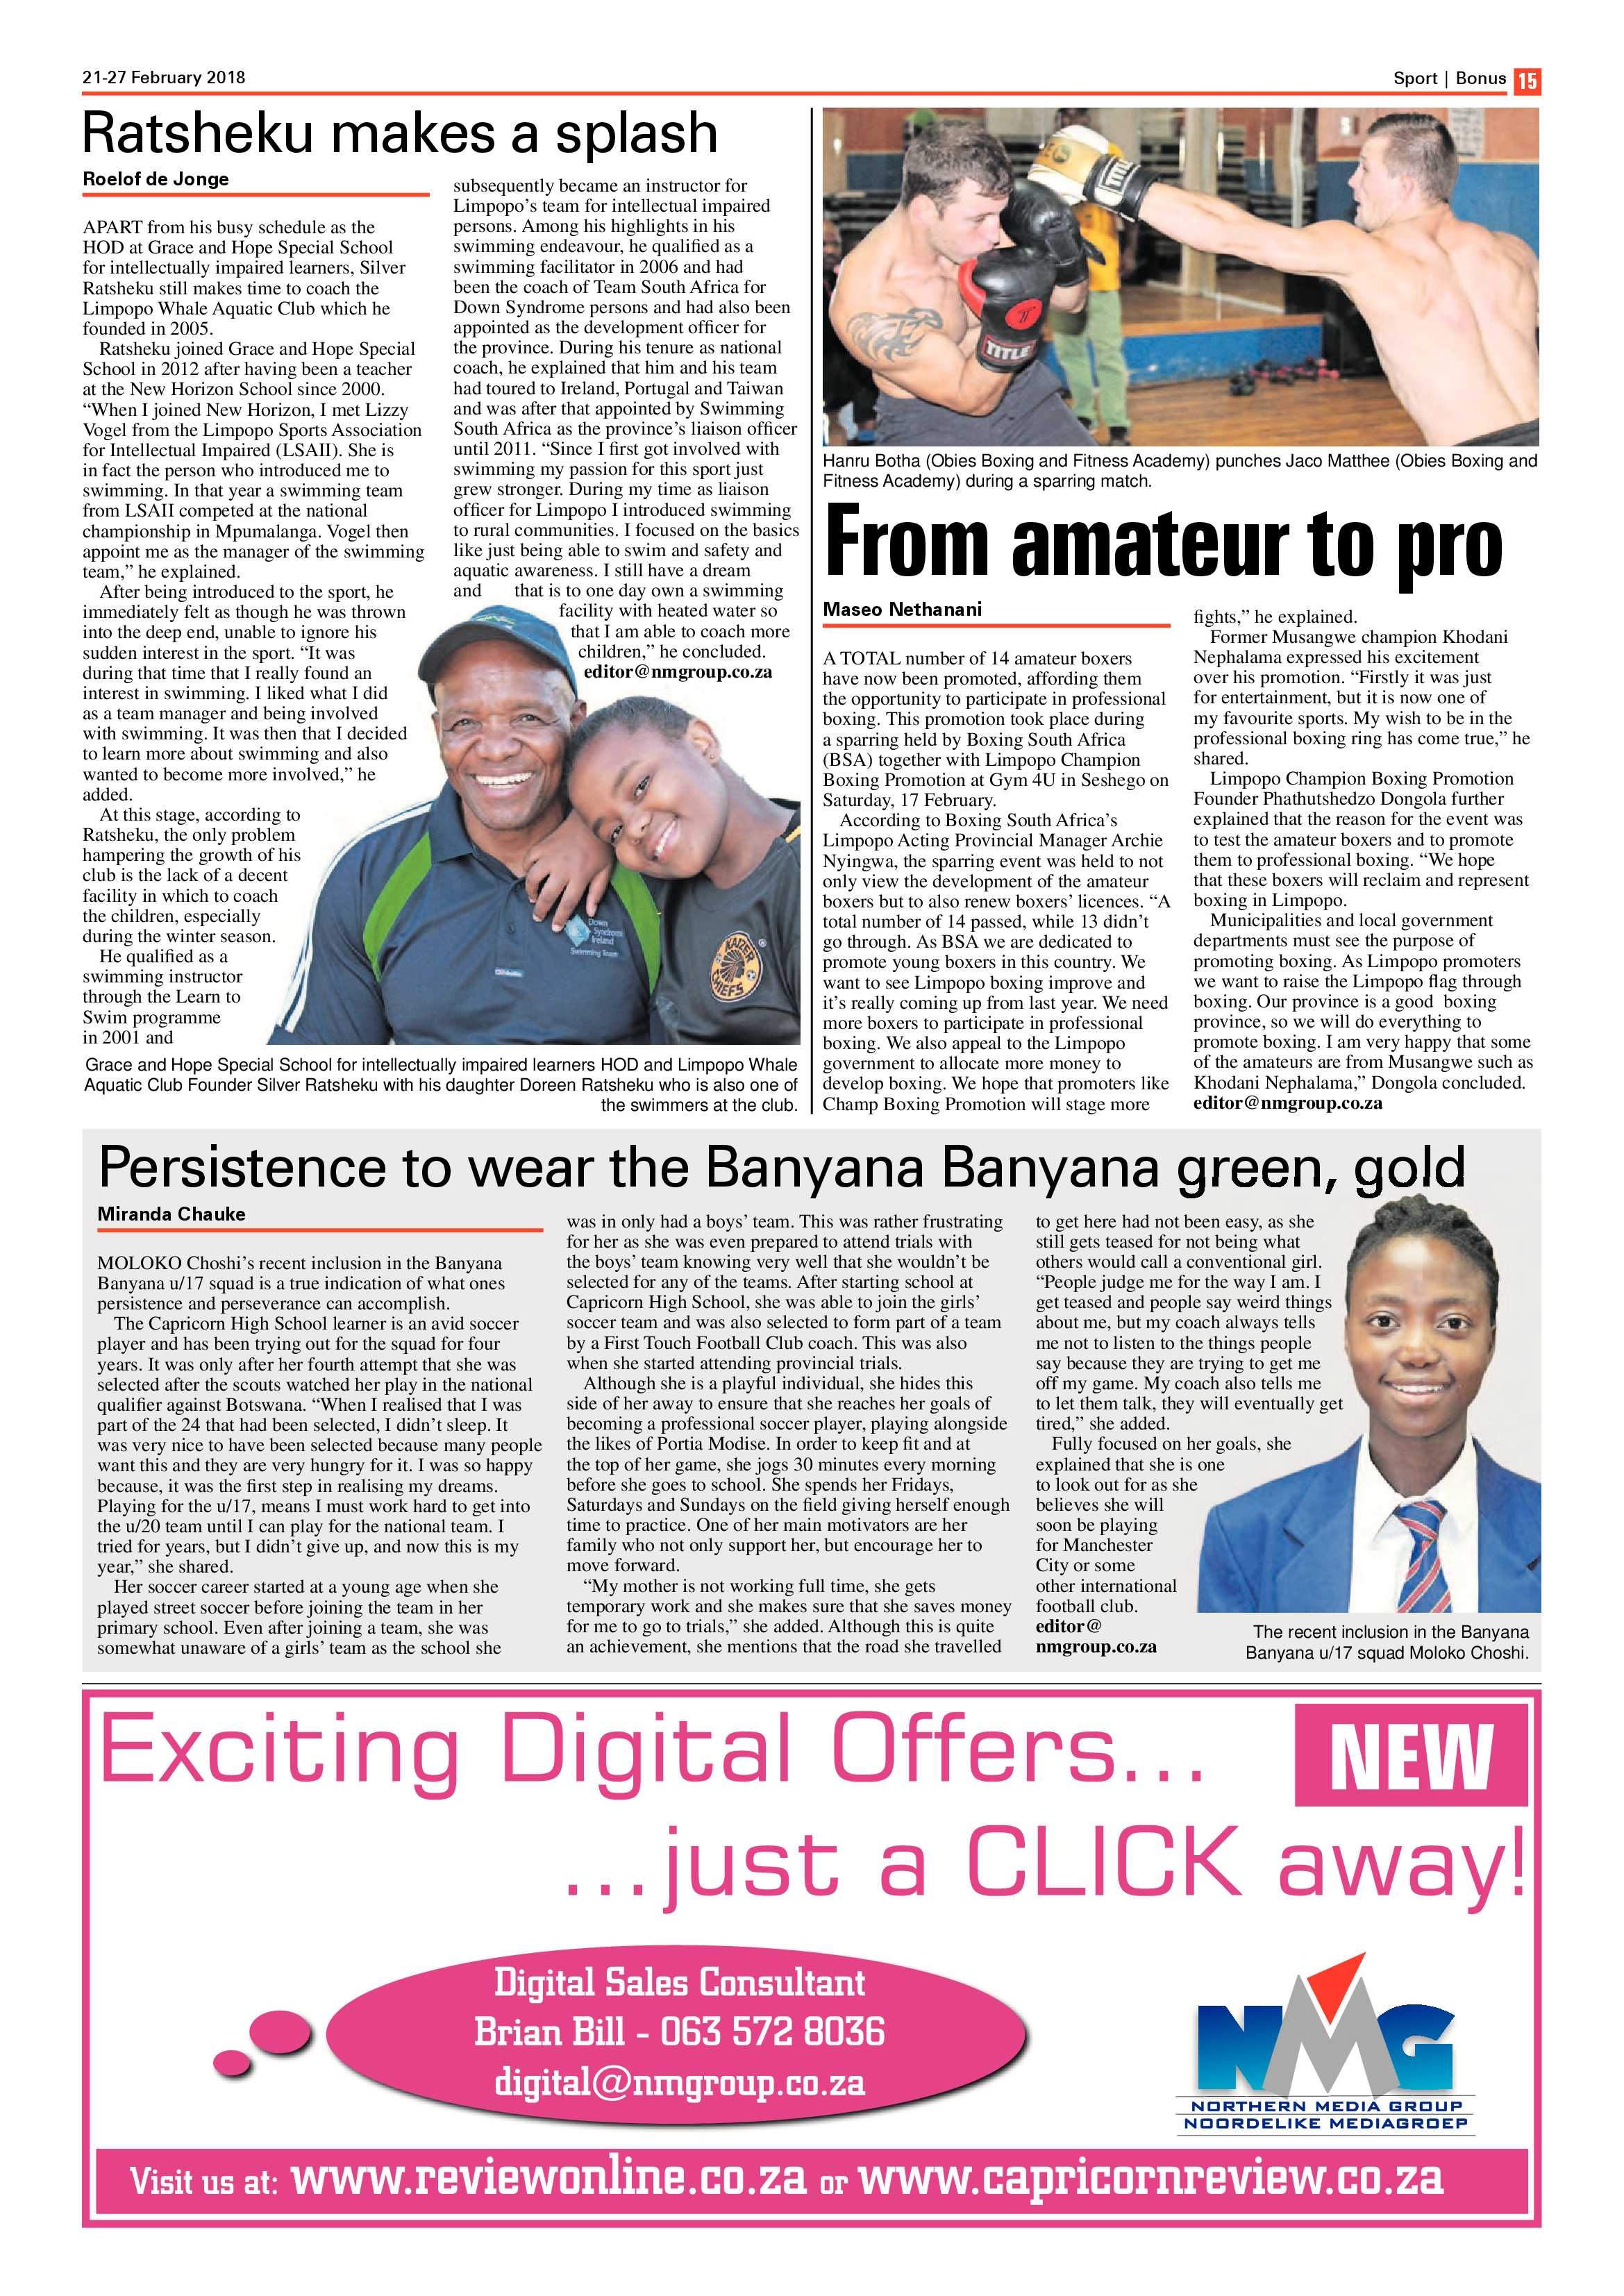 review-bonus-21-february-2018-epapers-page-15